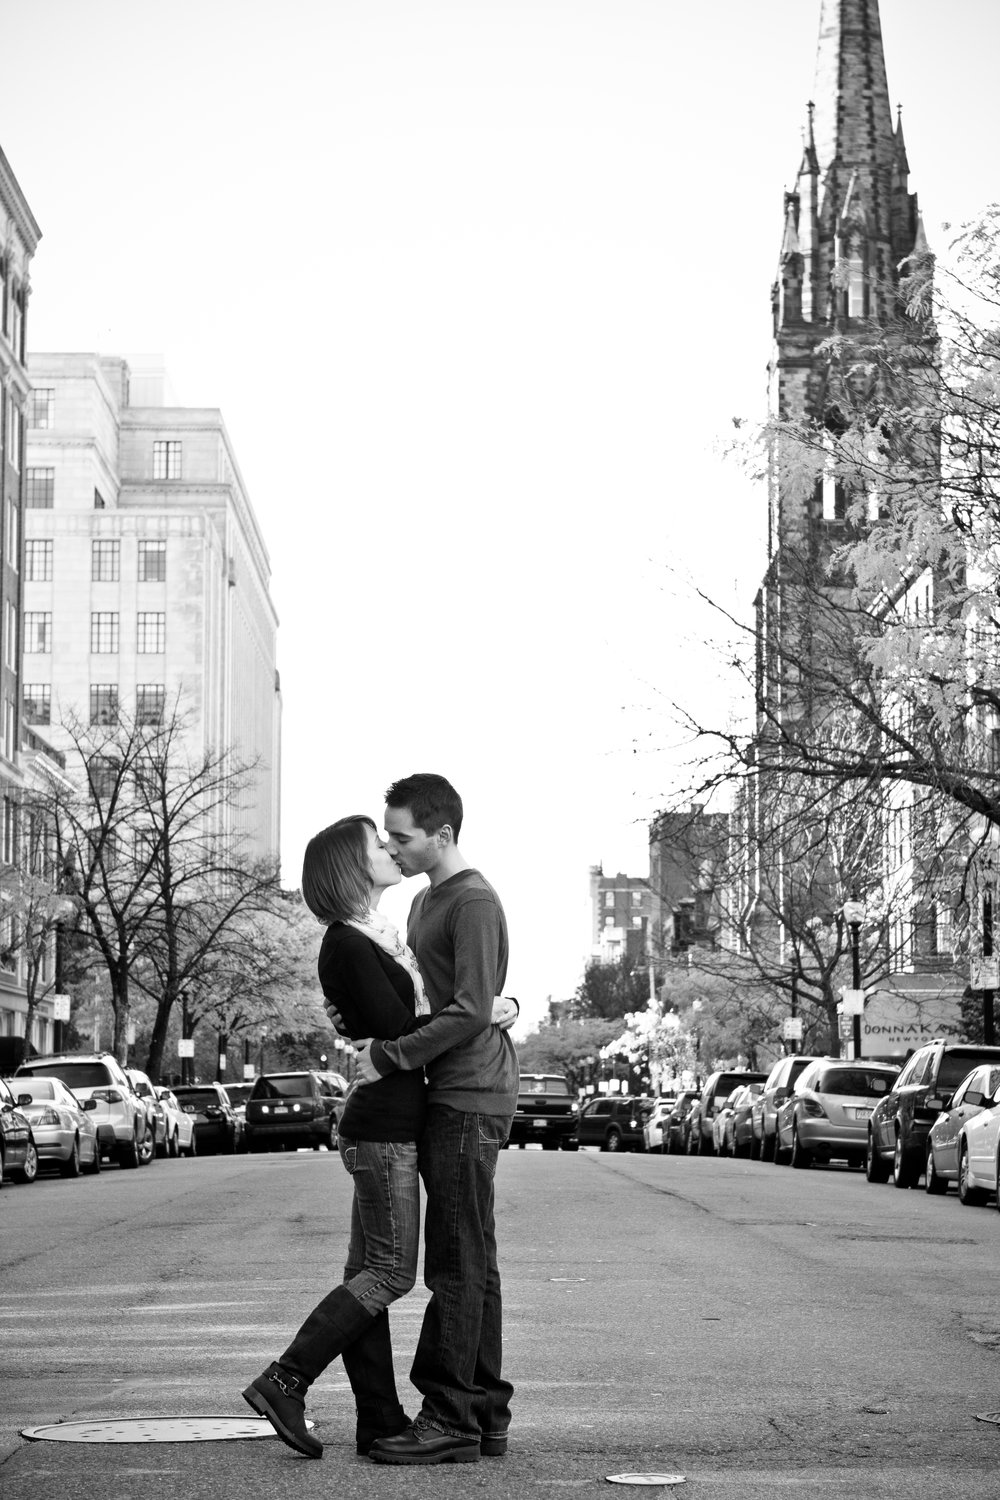 Emily and Pat Copley Square Boston Public Garden Massachusetts Engagement Photographer Shannon Sorensen Photography